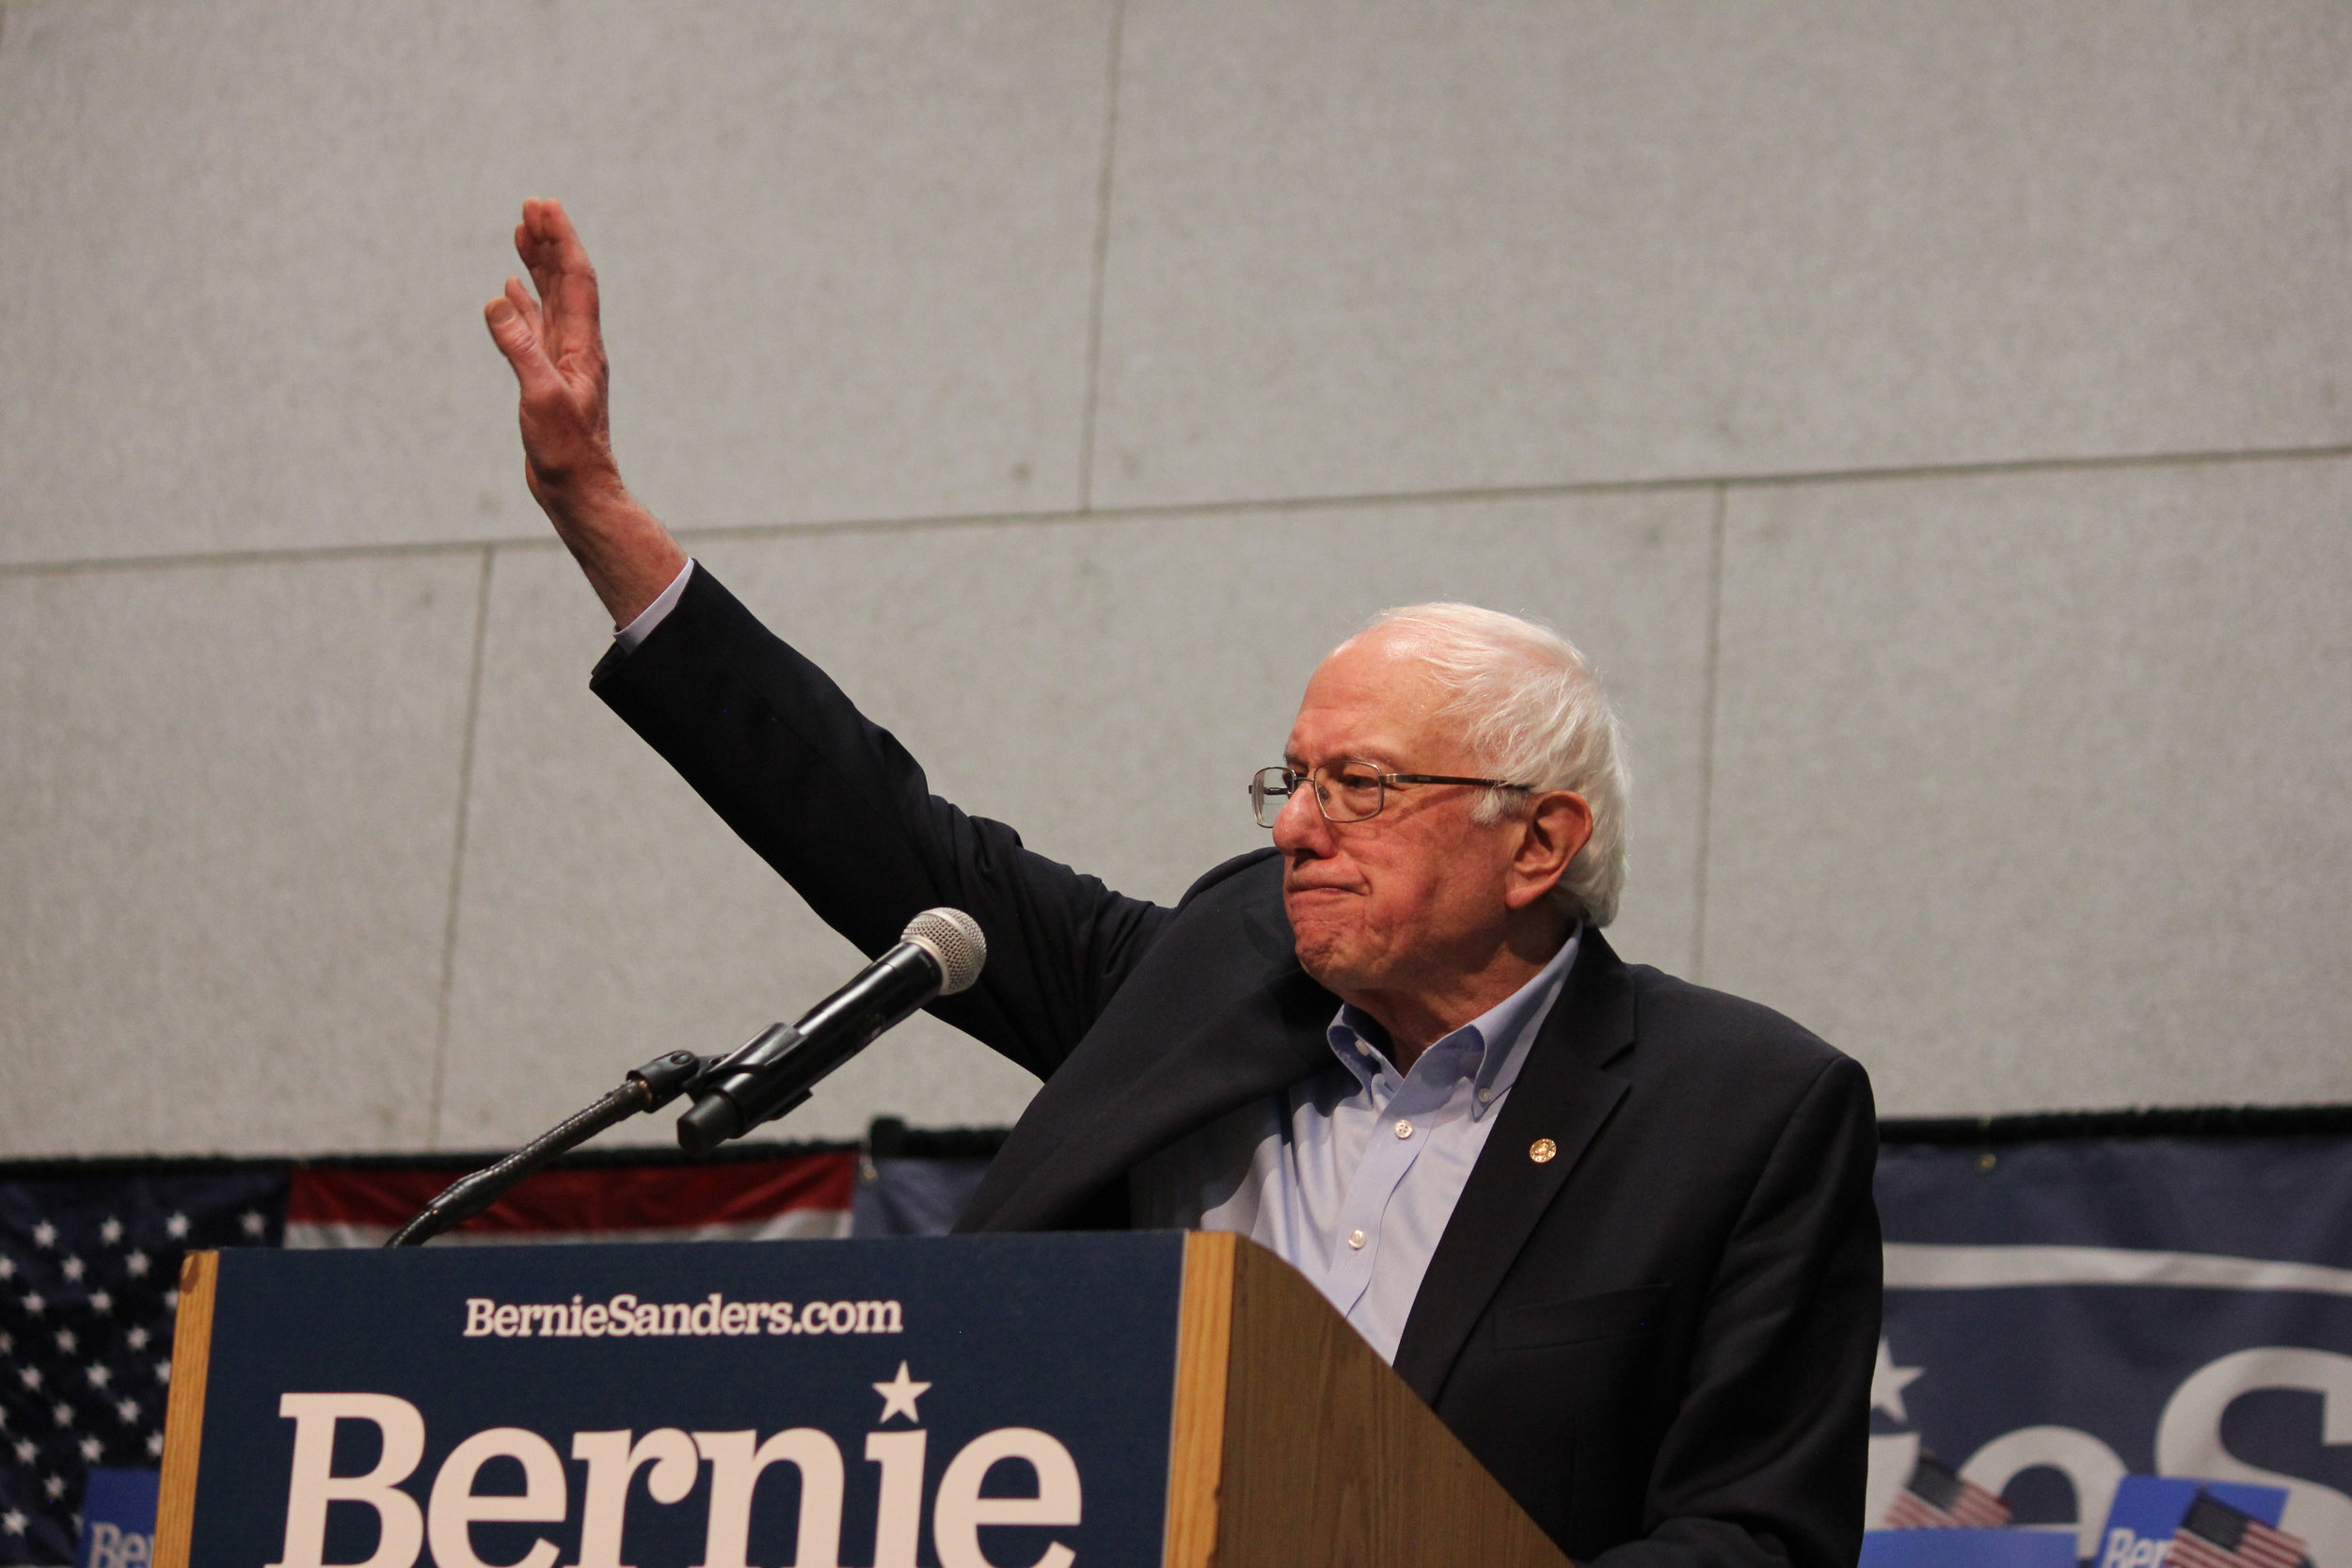 Sen. Bernie Sanders (I-VT) speaks to supporters at a rally at the Mid-America Center in Council Bluffs, Iowa. (Matt Johnson/Wikimedia Commons)